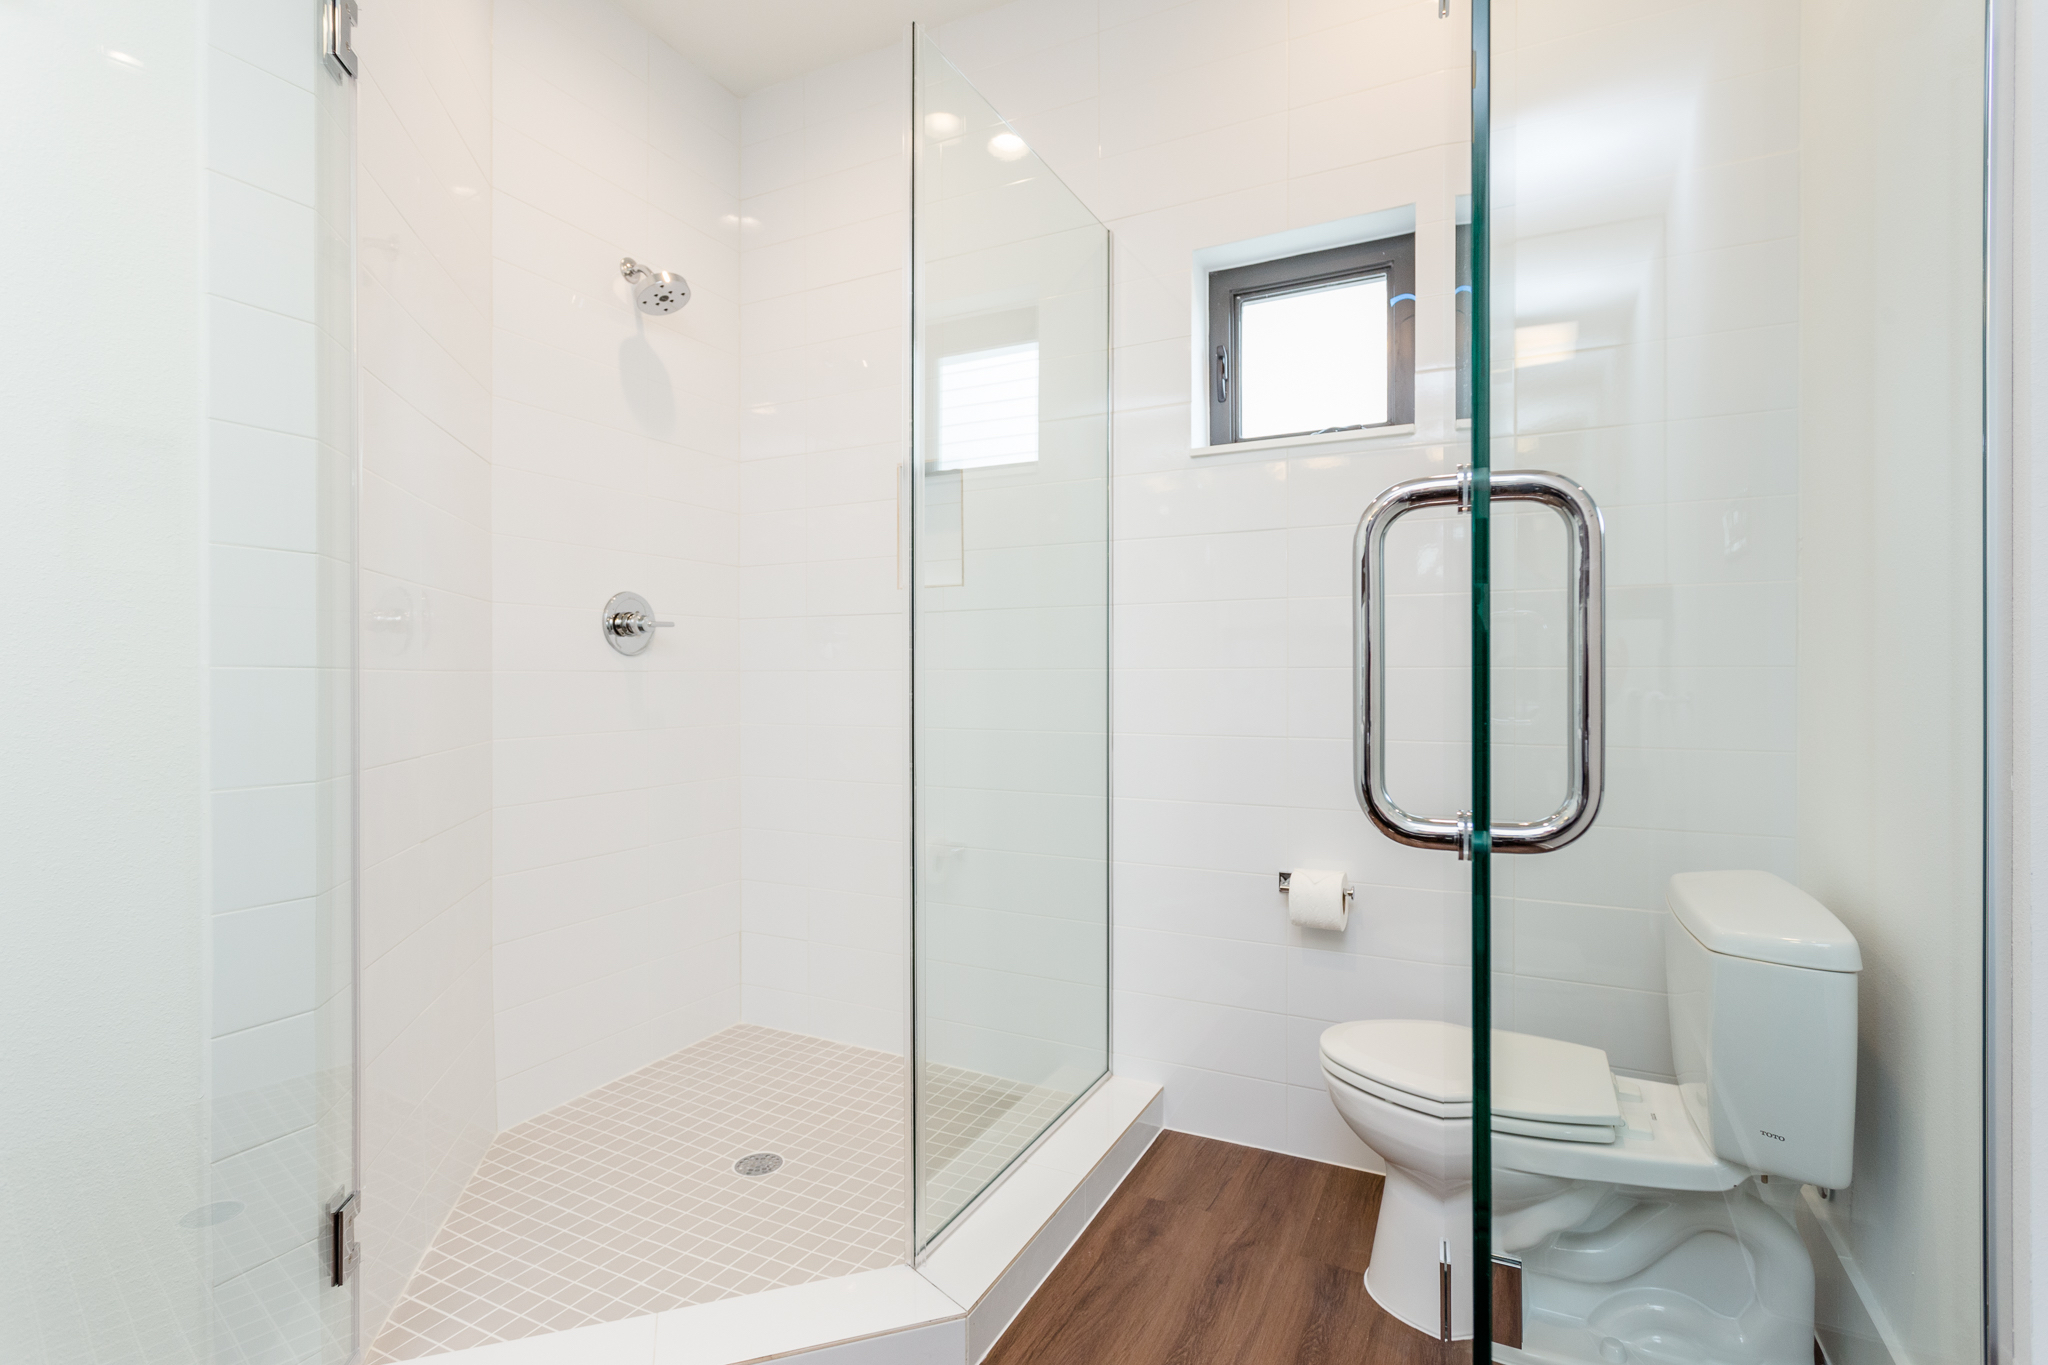 A frameless glass enclosure separates the shower from the water closet. Glass will be frosted to allow for enhanced privacy.